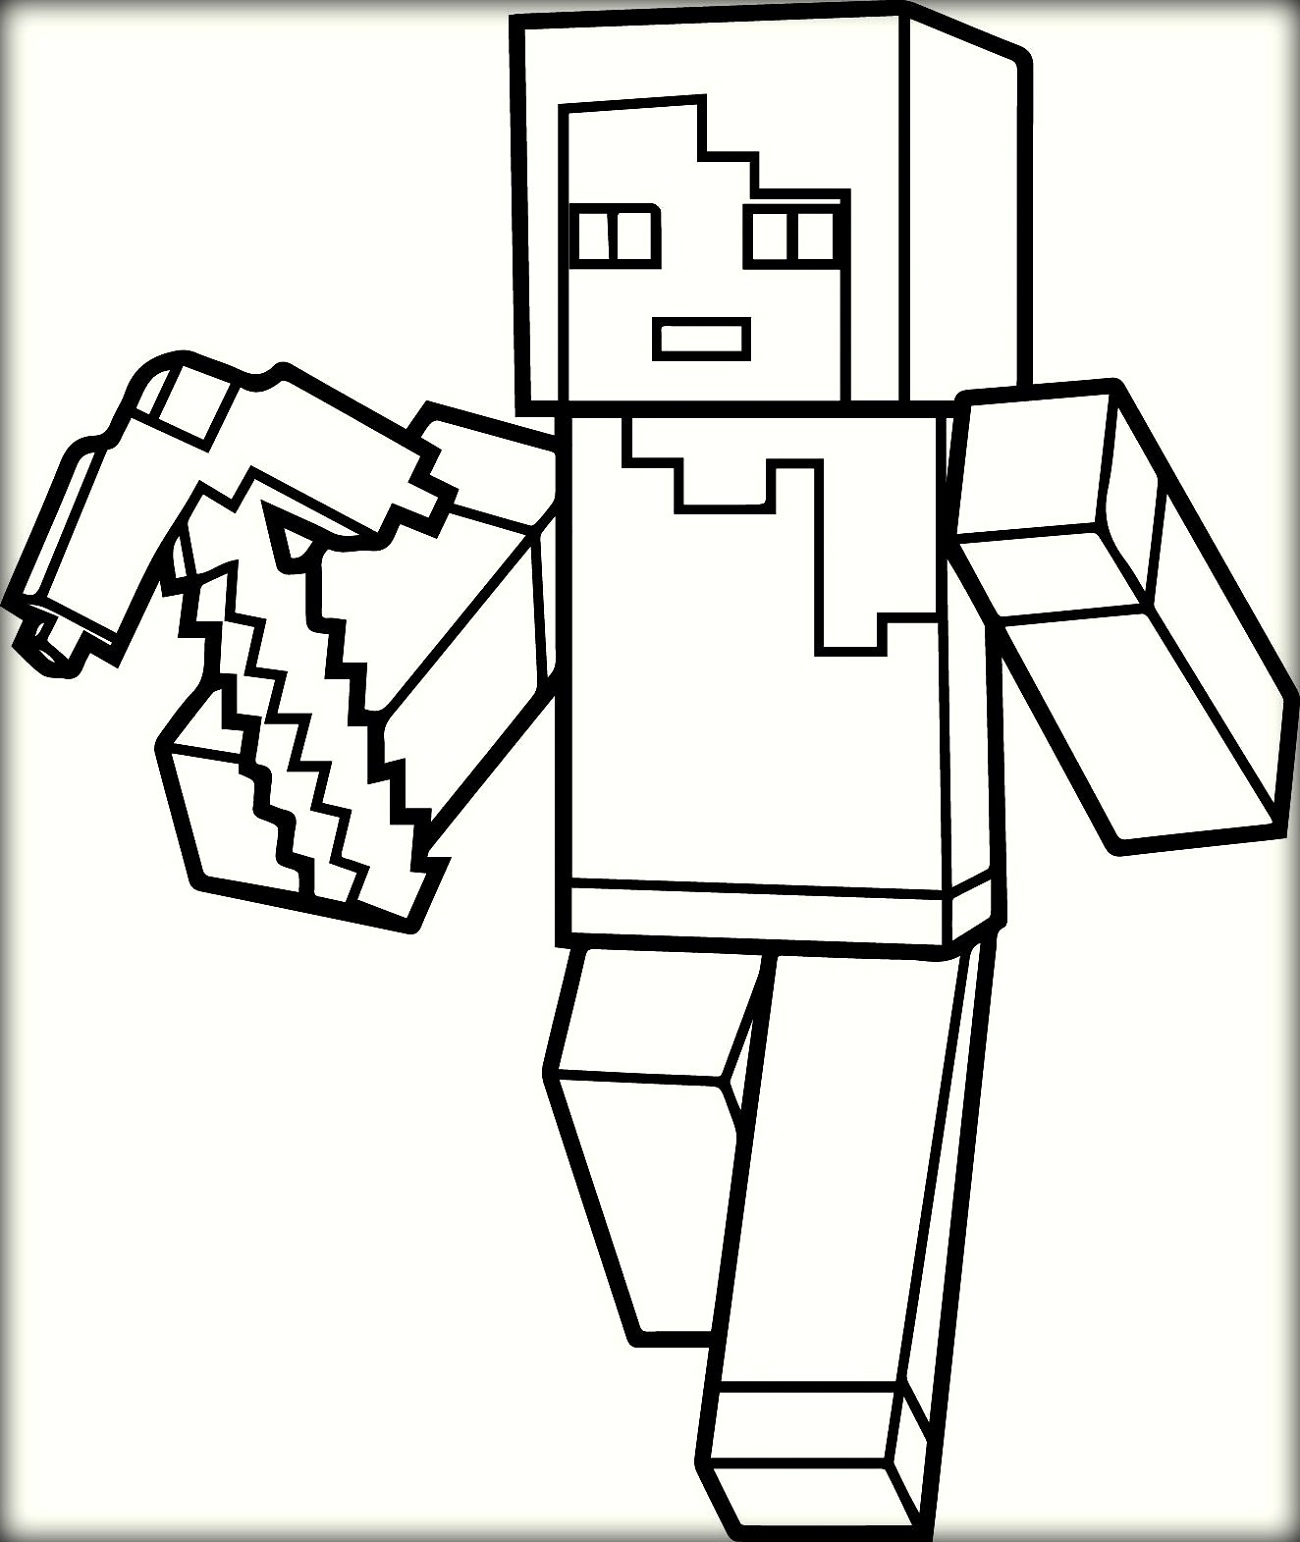 Minecraft Creeper Coloring Pages - Coloring Home